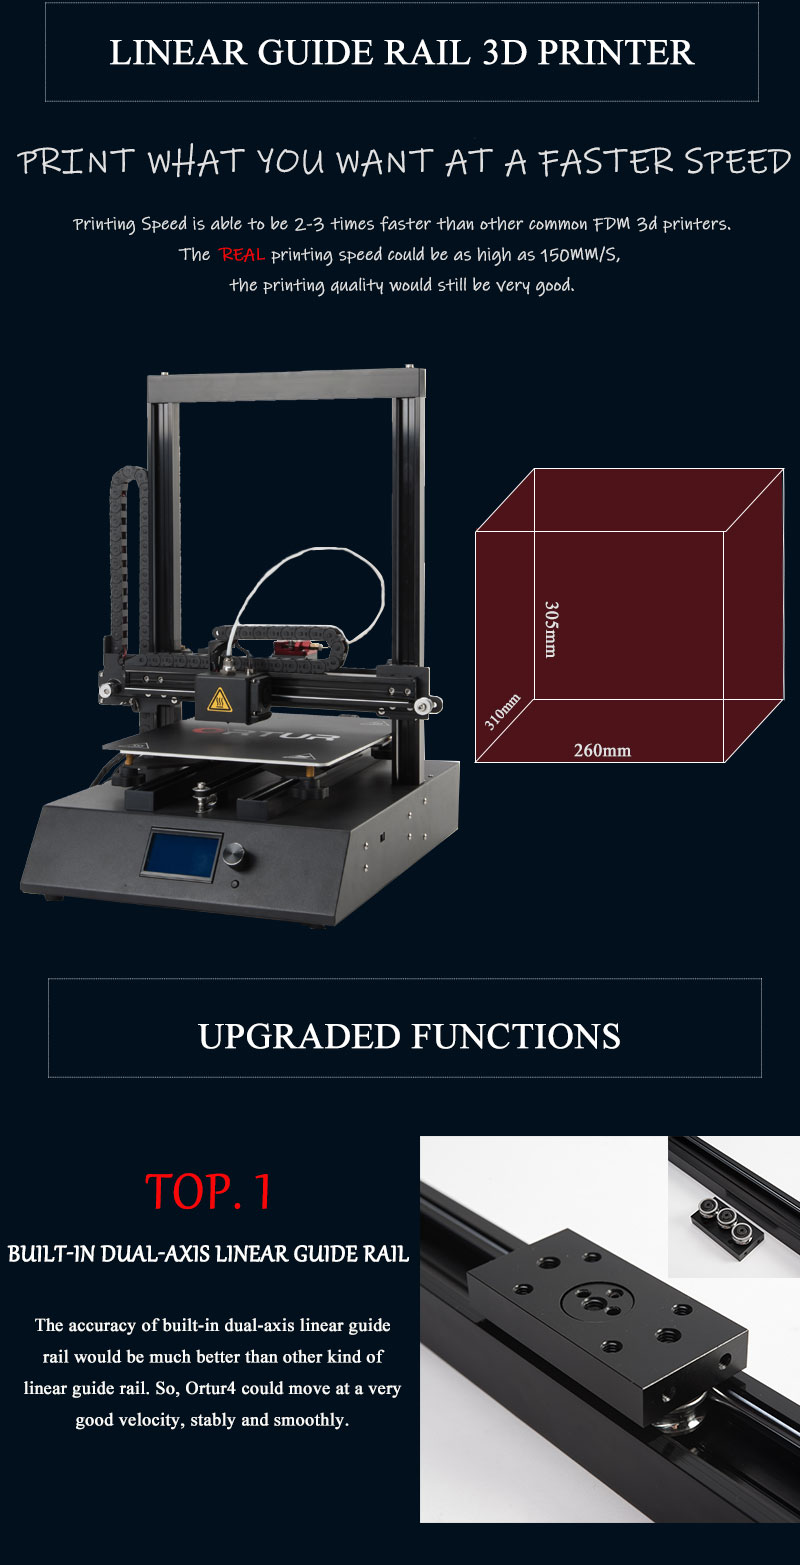 Ortur-4 3D Printer